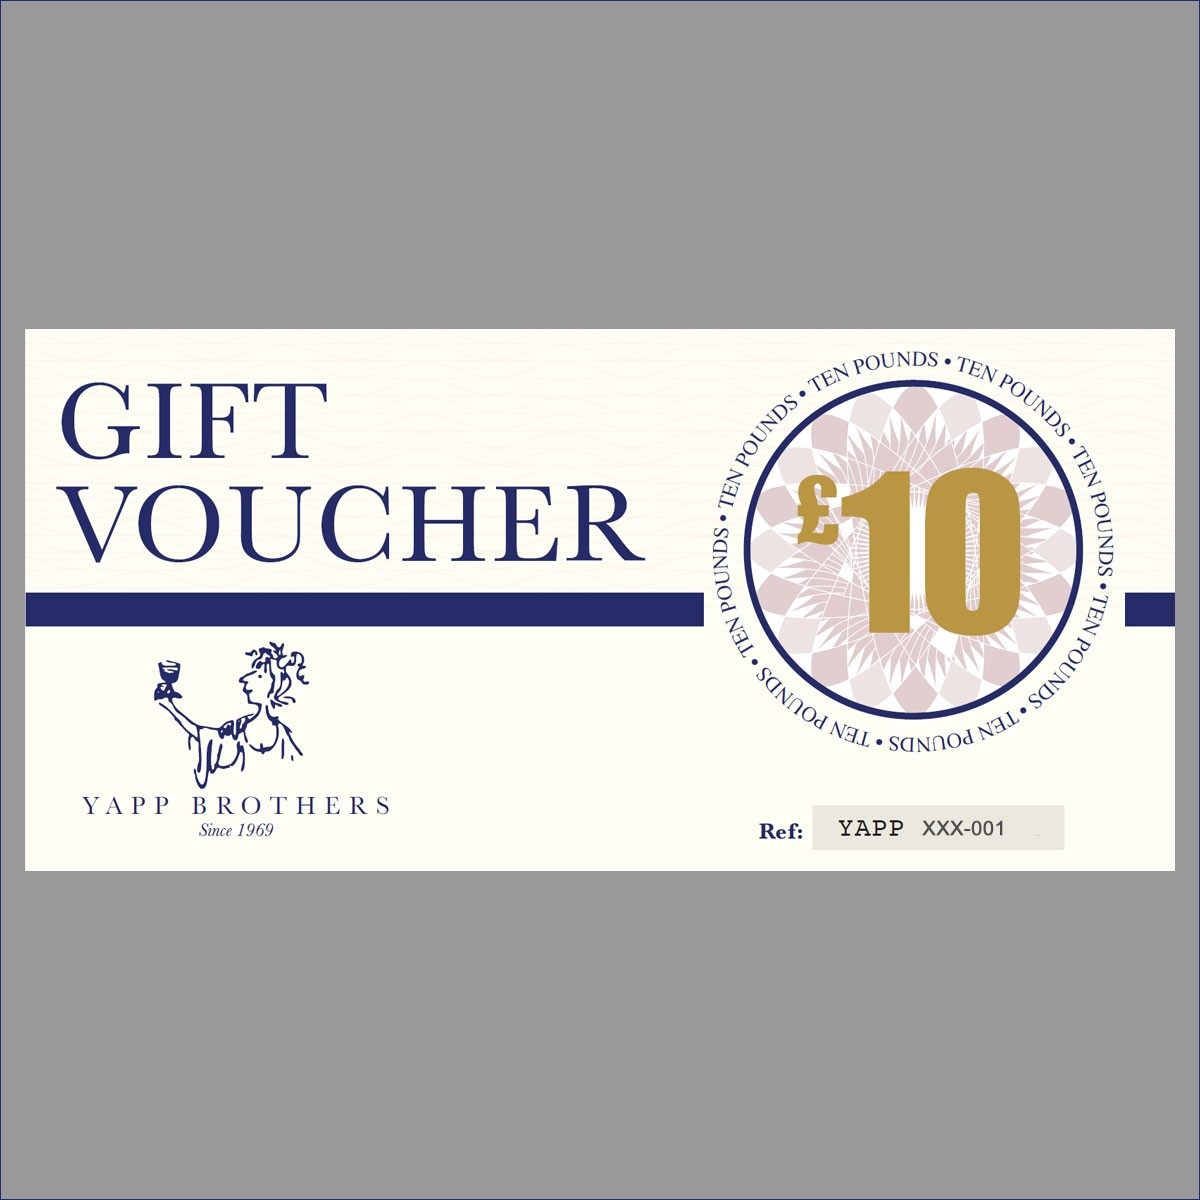 Yapp Brothers £10 Gift Voucher